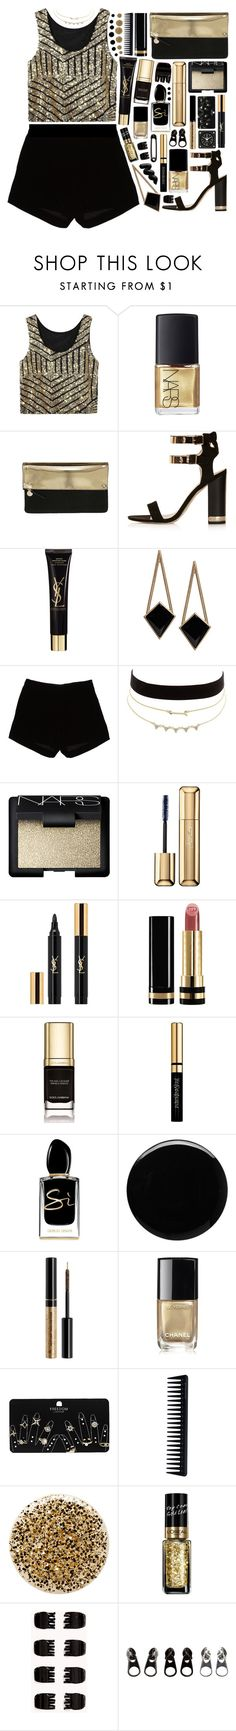 """""""Outfit 233"""" by holass ❤ liked on Polyvore featuring NARS Cosmetics, Clare V., Topshop, Yves Saint Laurent, ASOS, Andrew Gn, Charlotte Russe, Guerlain, Gucci and Dolce&Gabbana"""